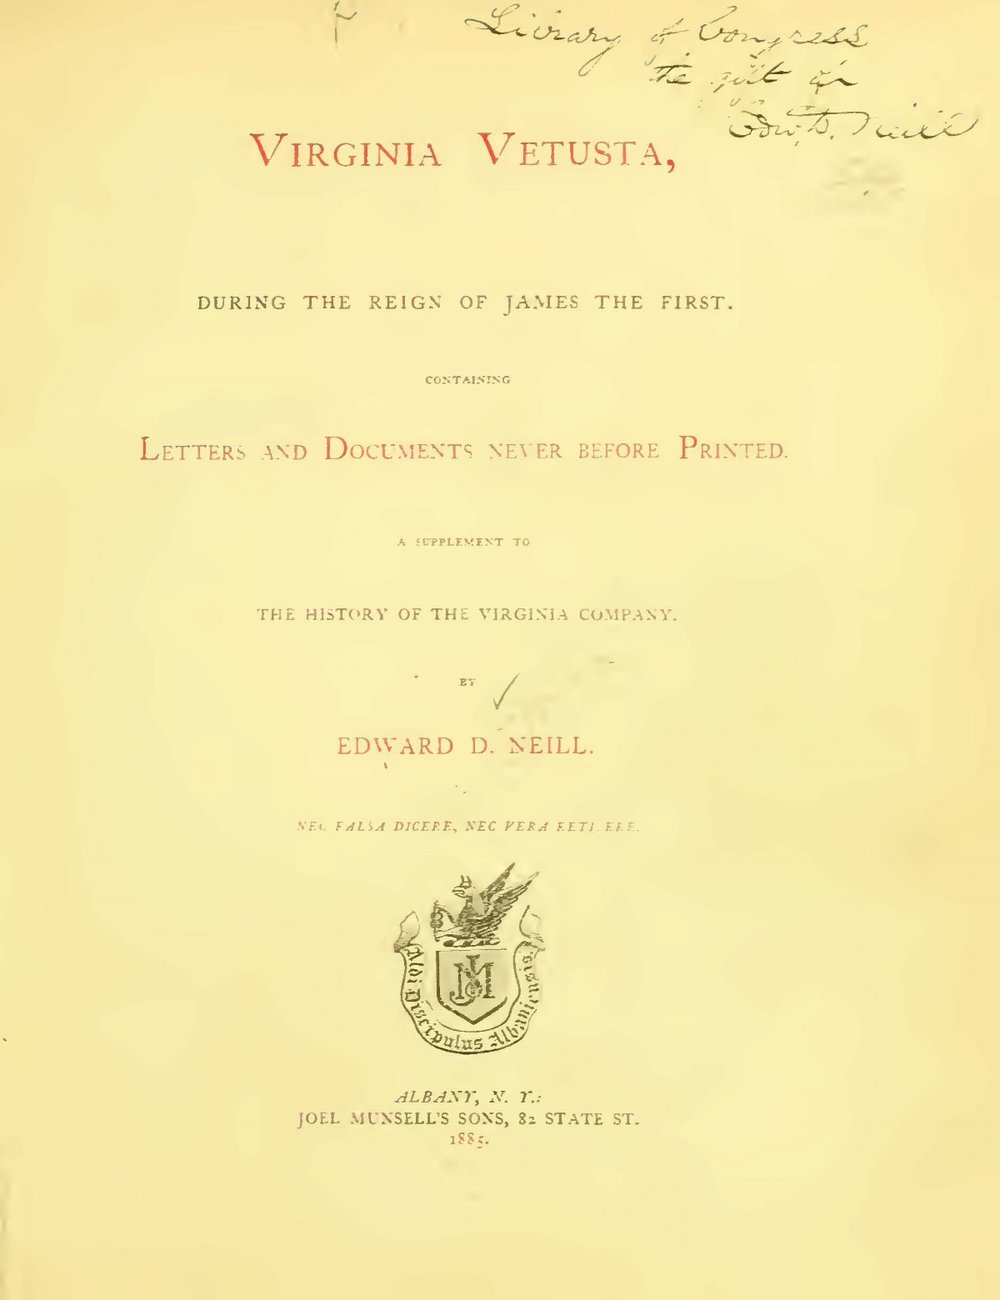 Neill, Edward Duffield, Virginia Vetusta During the Reign of James the First Title Page.jpg